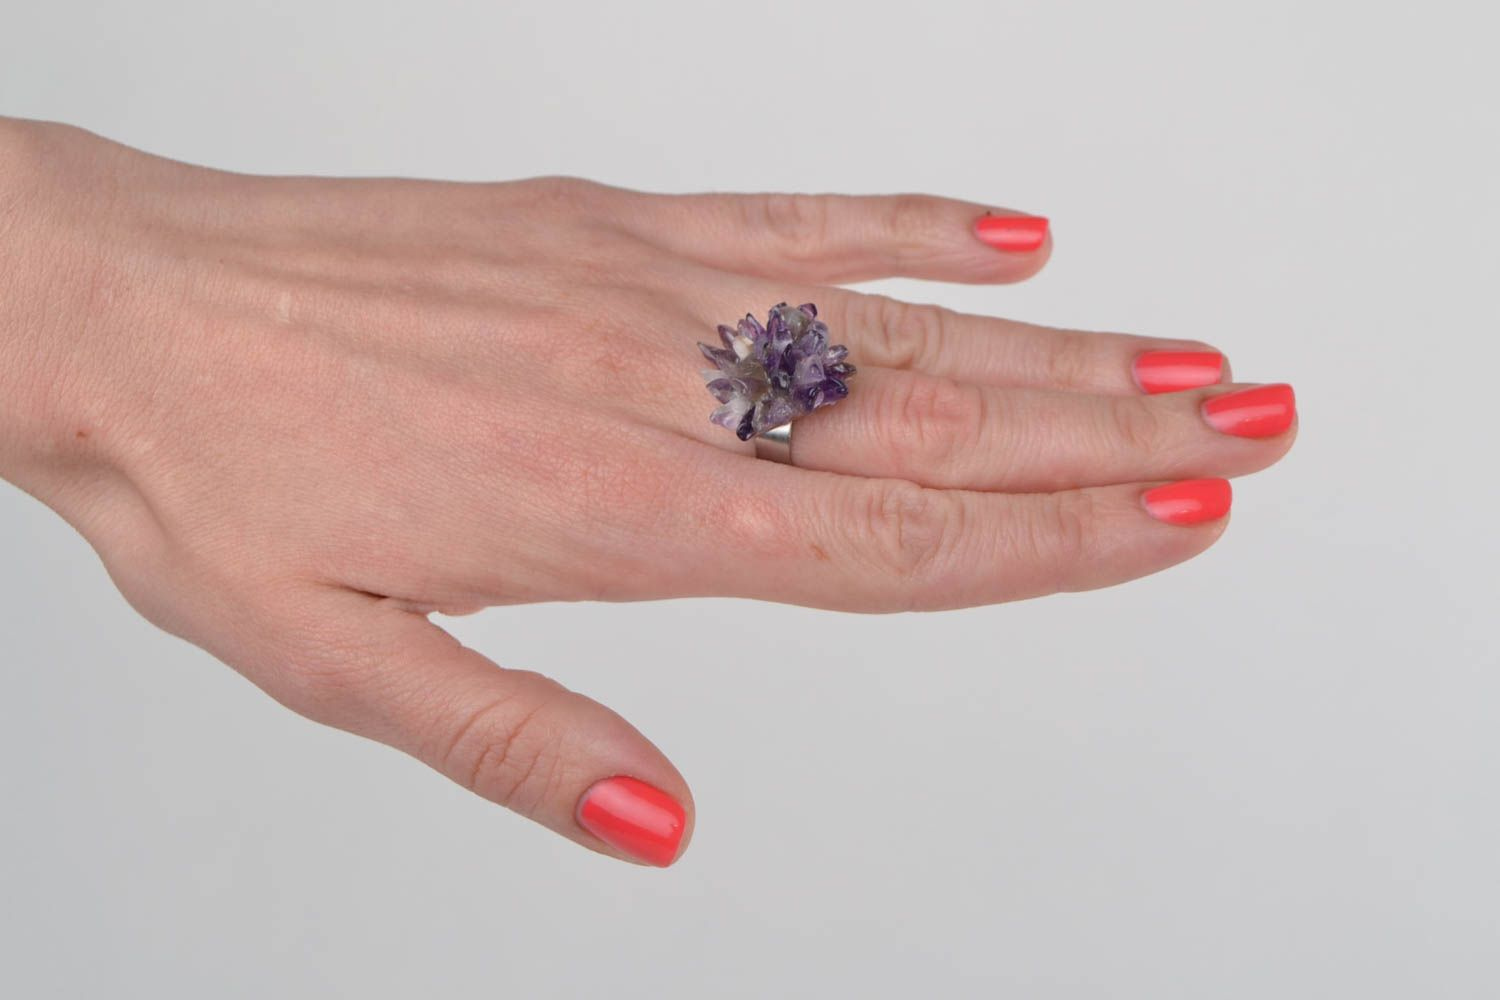 Square-shaped ring with natural stone amethyst beautiful handmade accessory photo 1